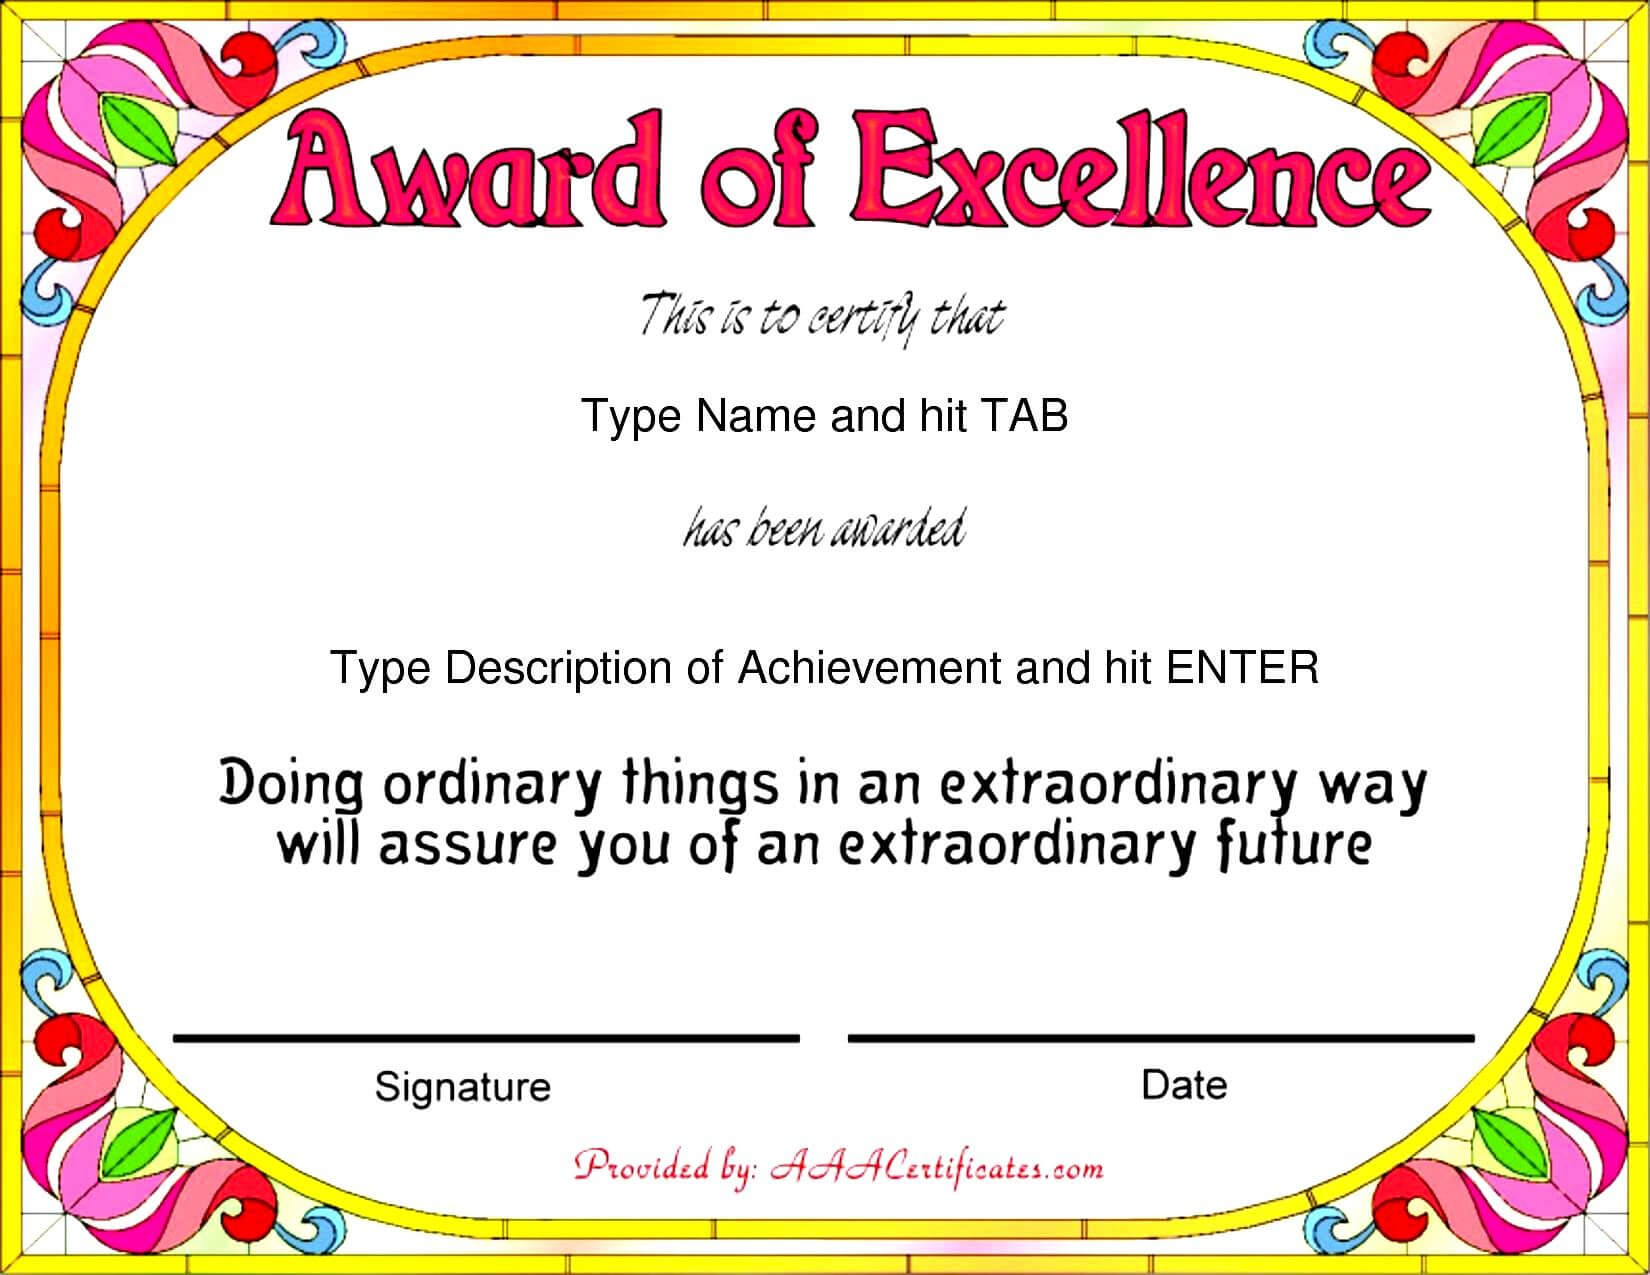 Certificate Templates Funny Filename | Elsik Blue Cetane Within Free Funny Award Certificate Templates For Word